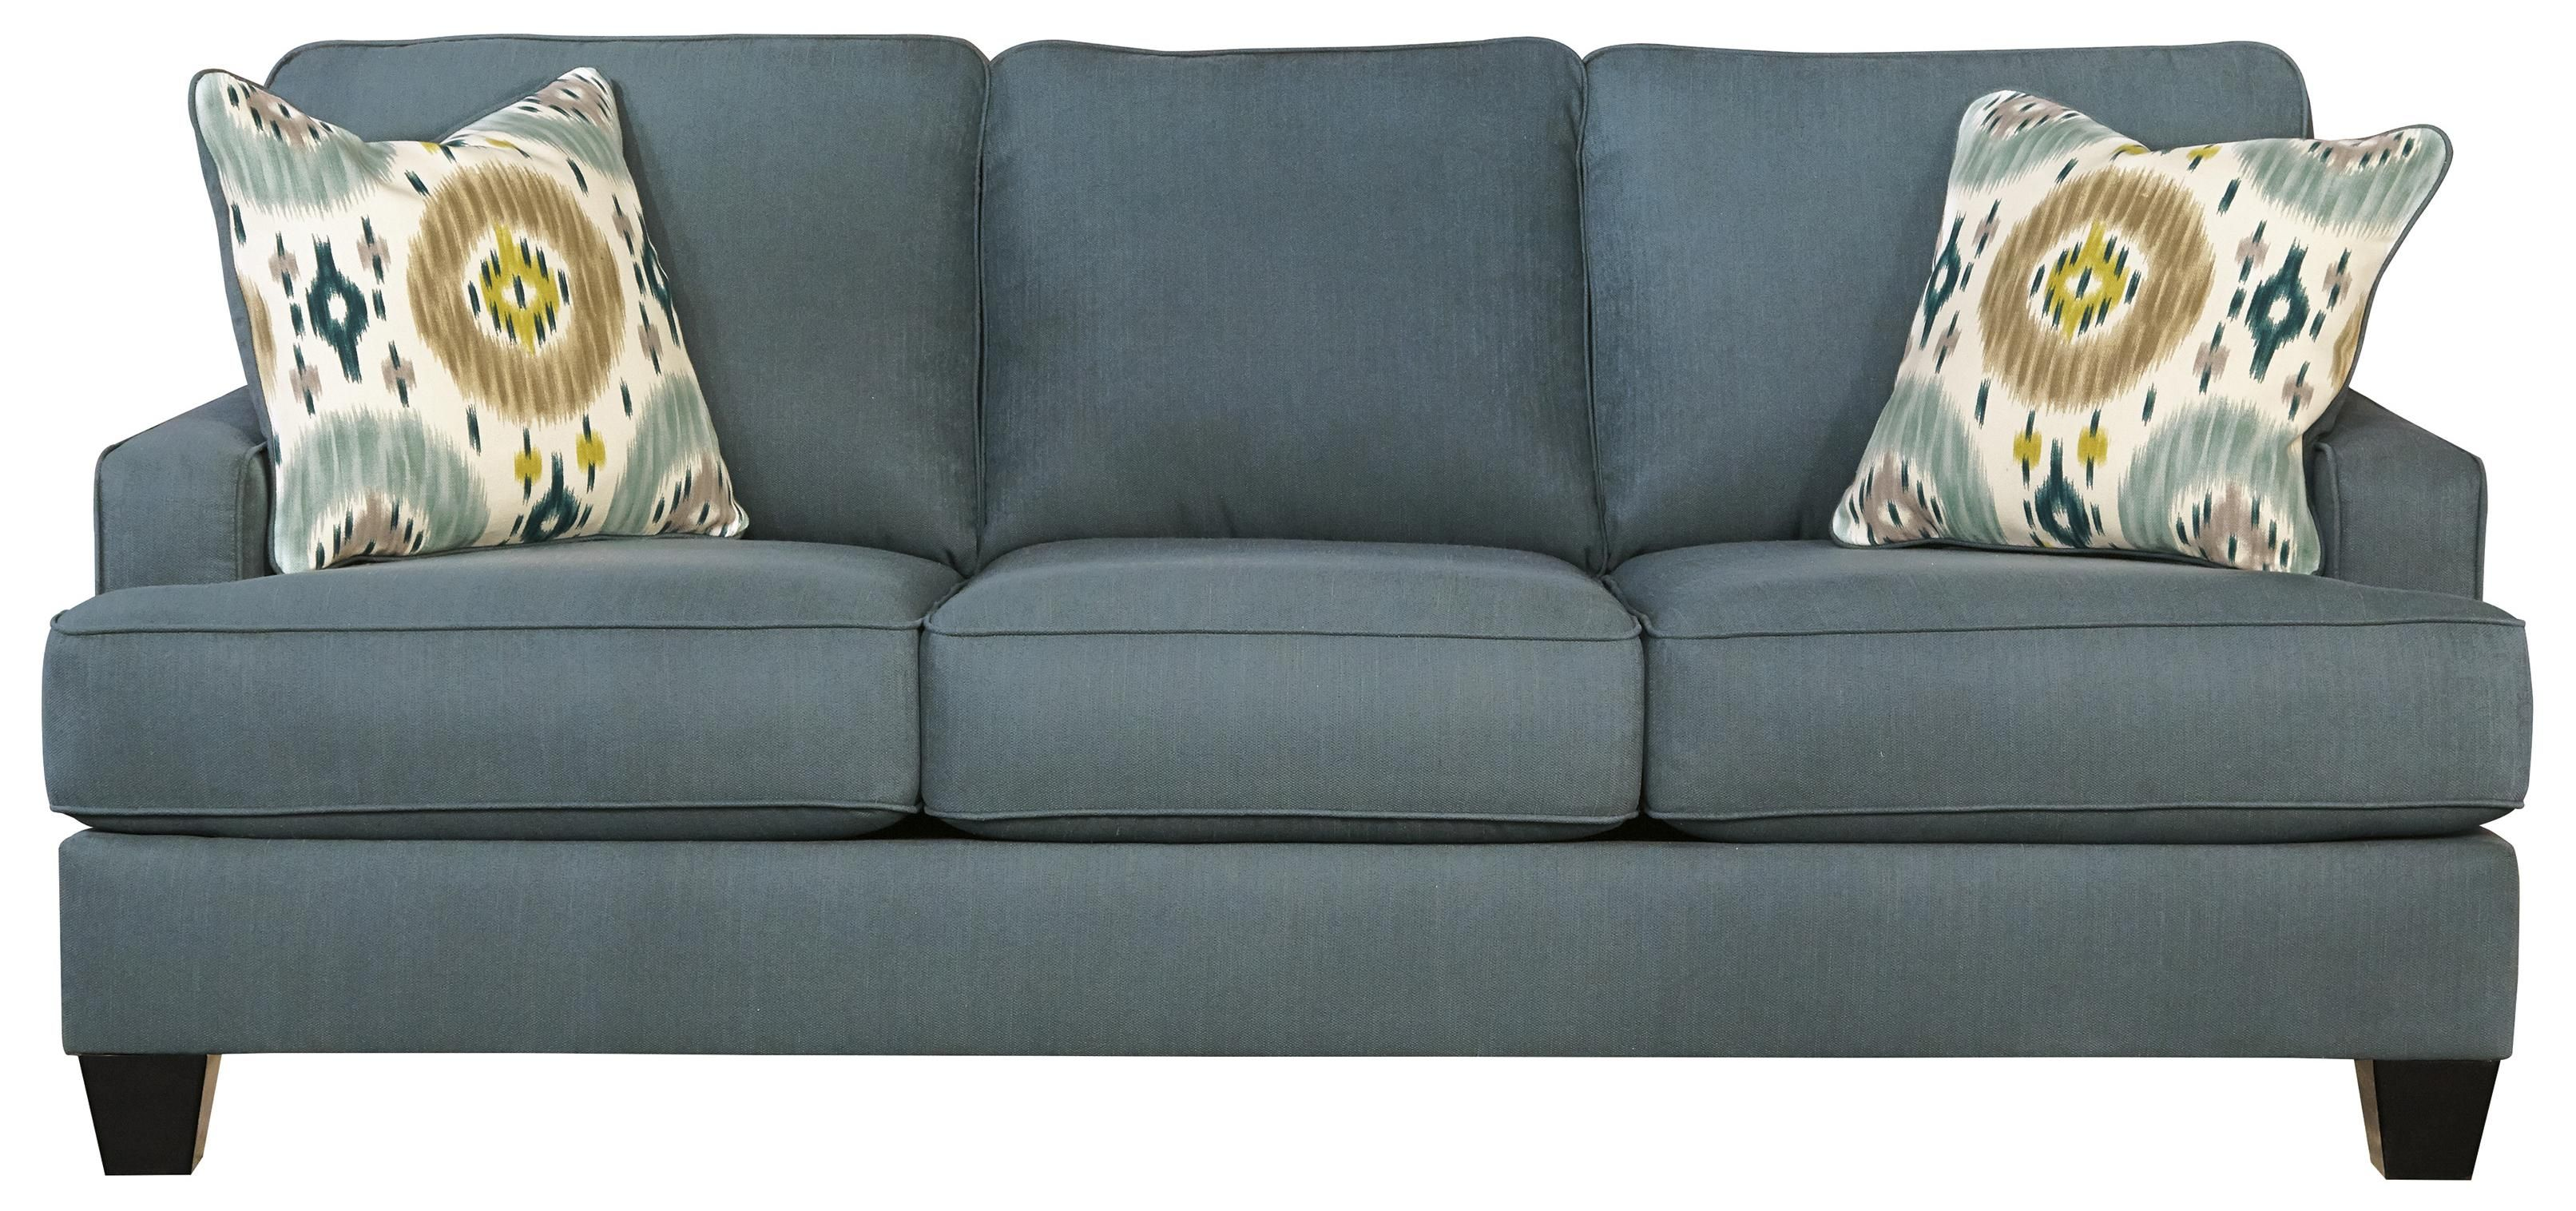 Awesome Brileigh   Teal Sofa By Benchcraft